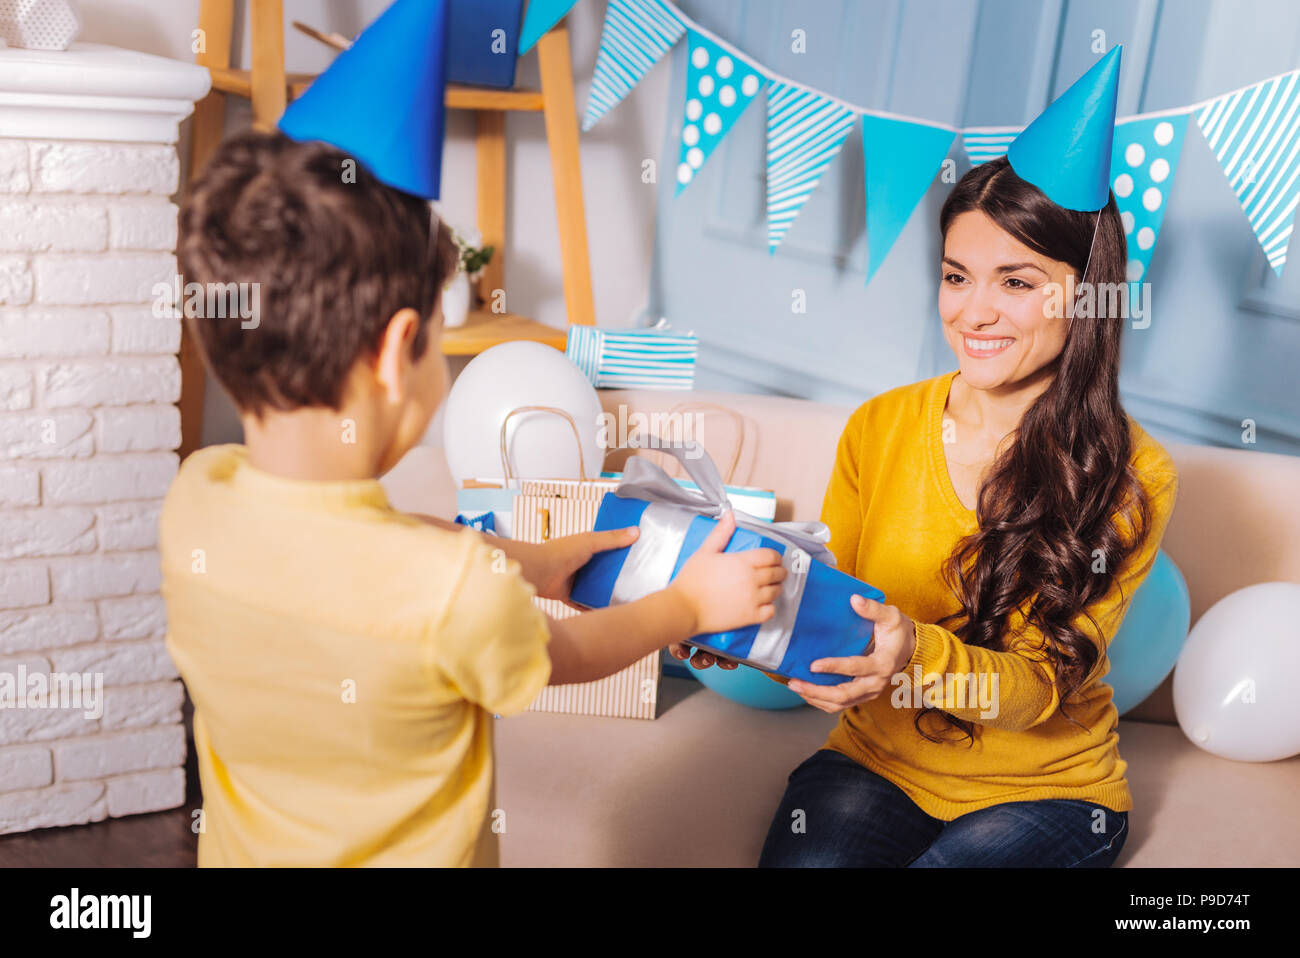 Pleased mommy having birthday party - Stock Image